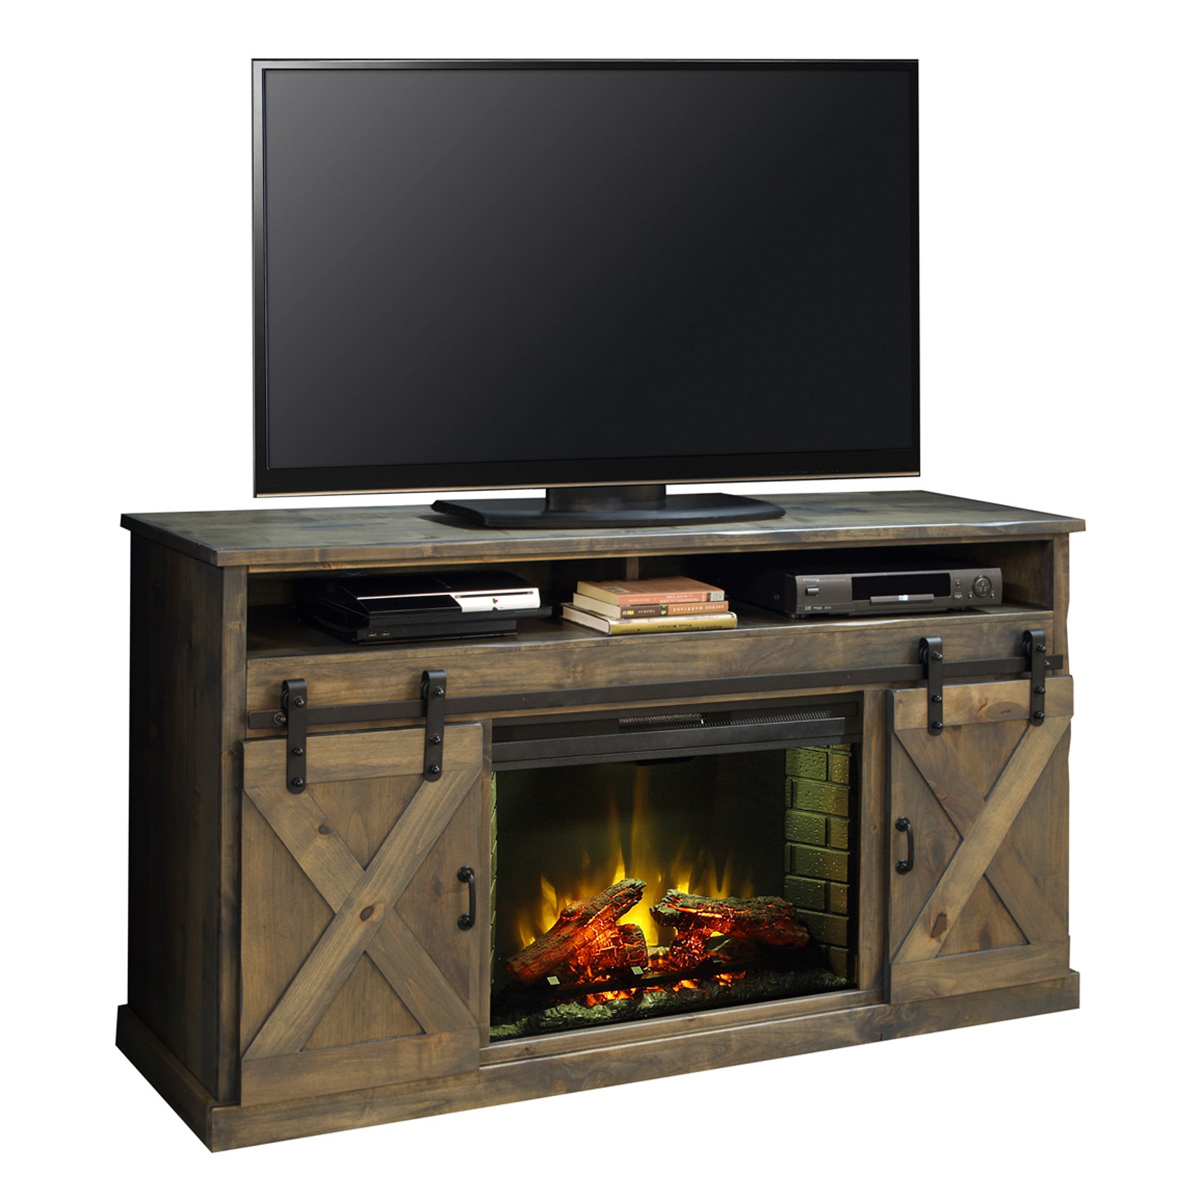 dealer stands furniture stand product with w wfireplace oh fireplace ashley tv mentor store frantin best